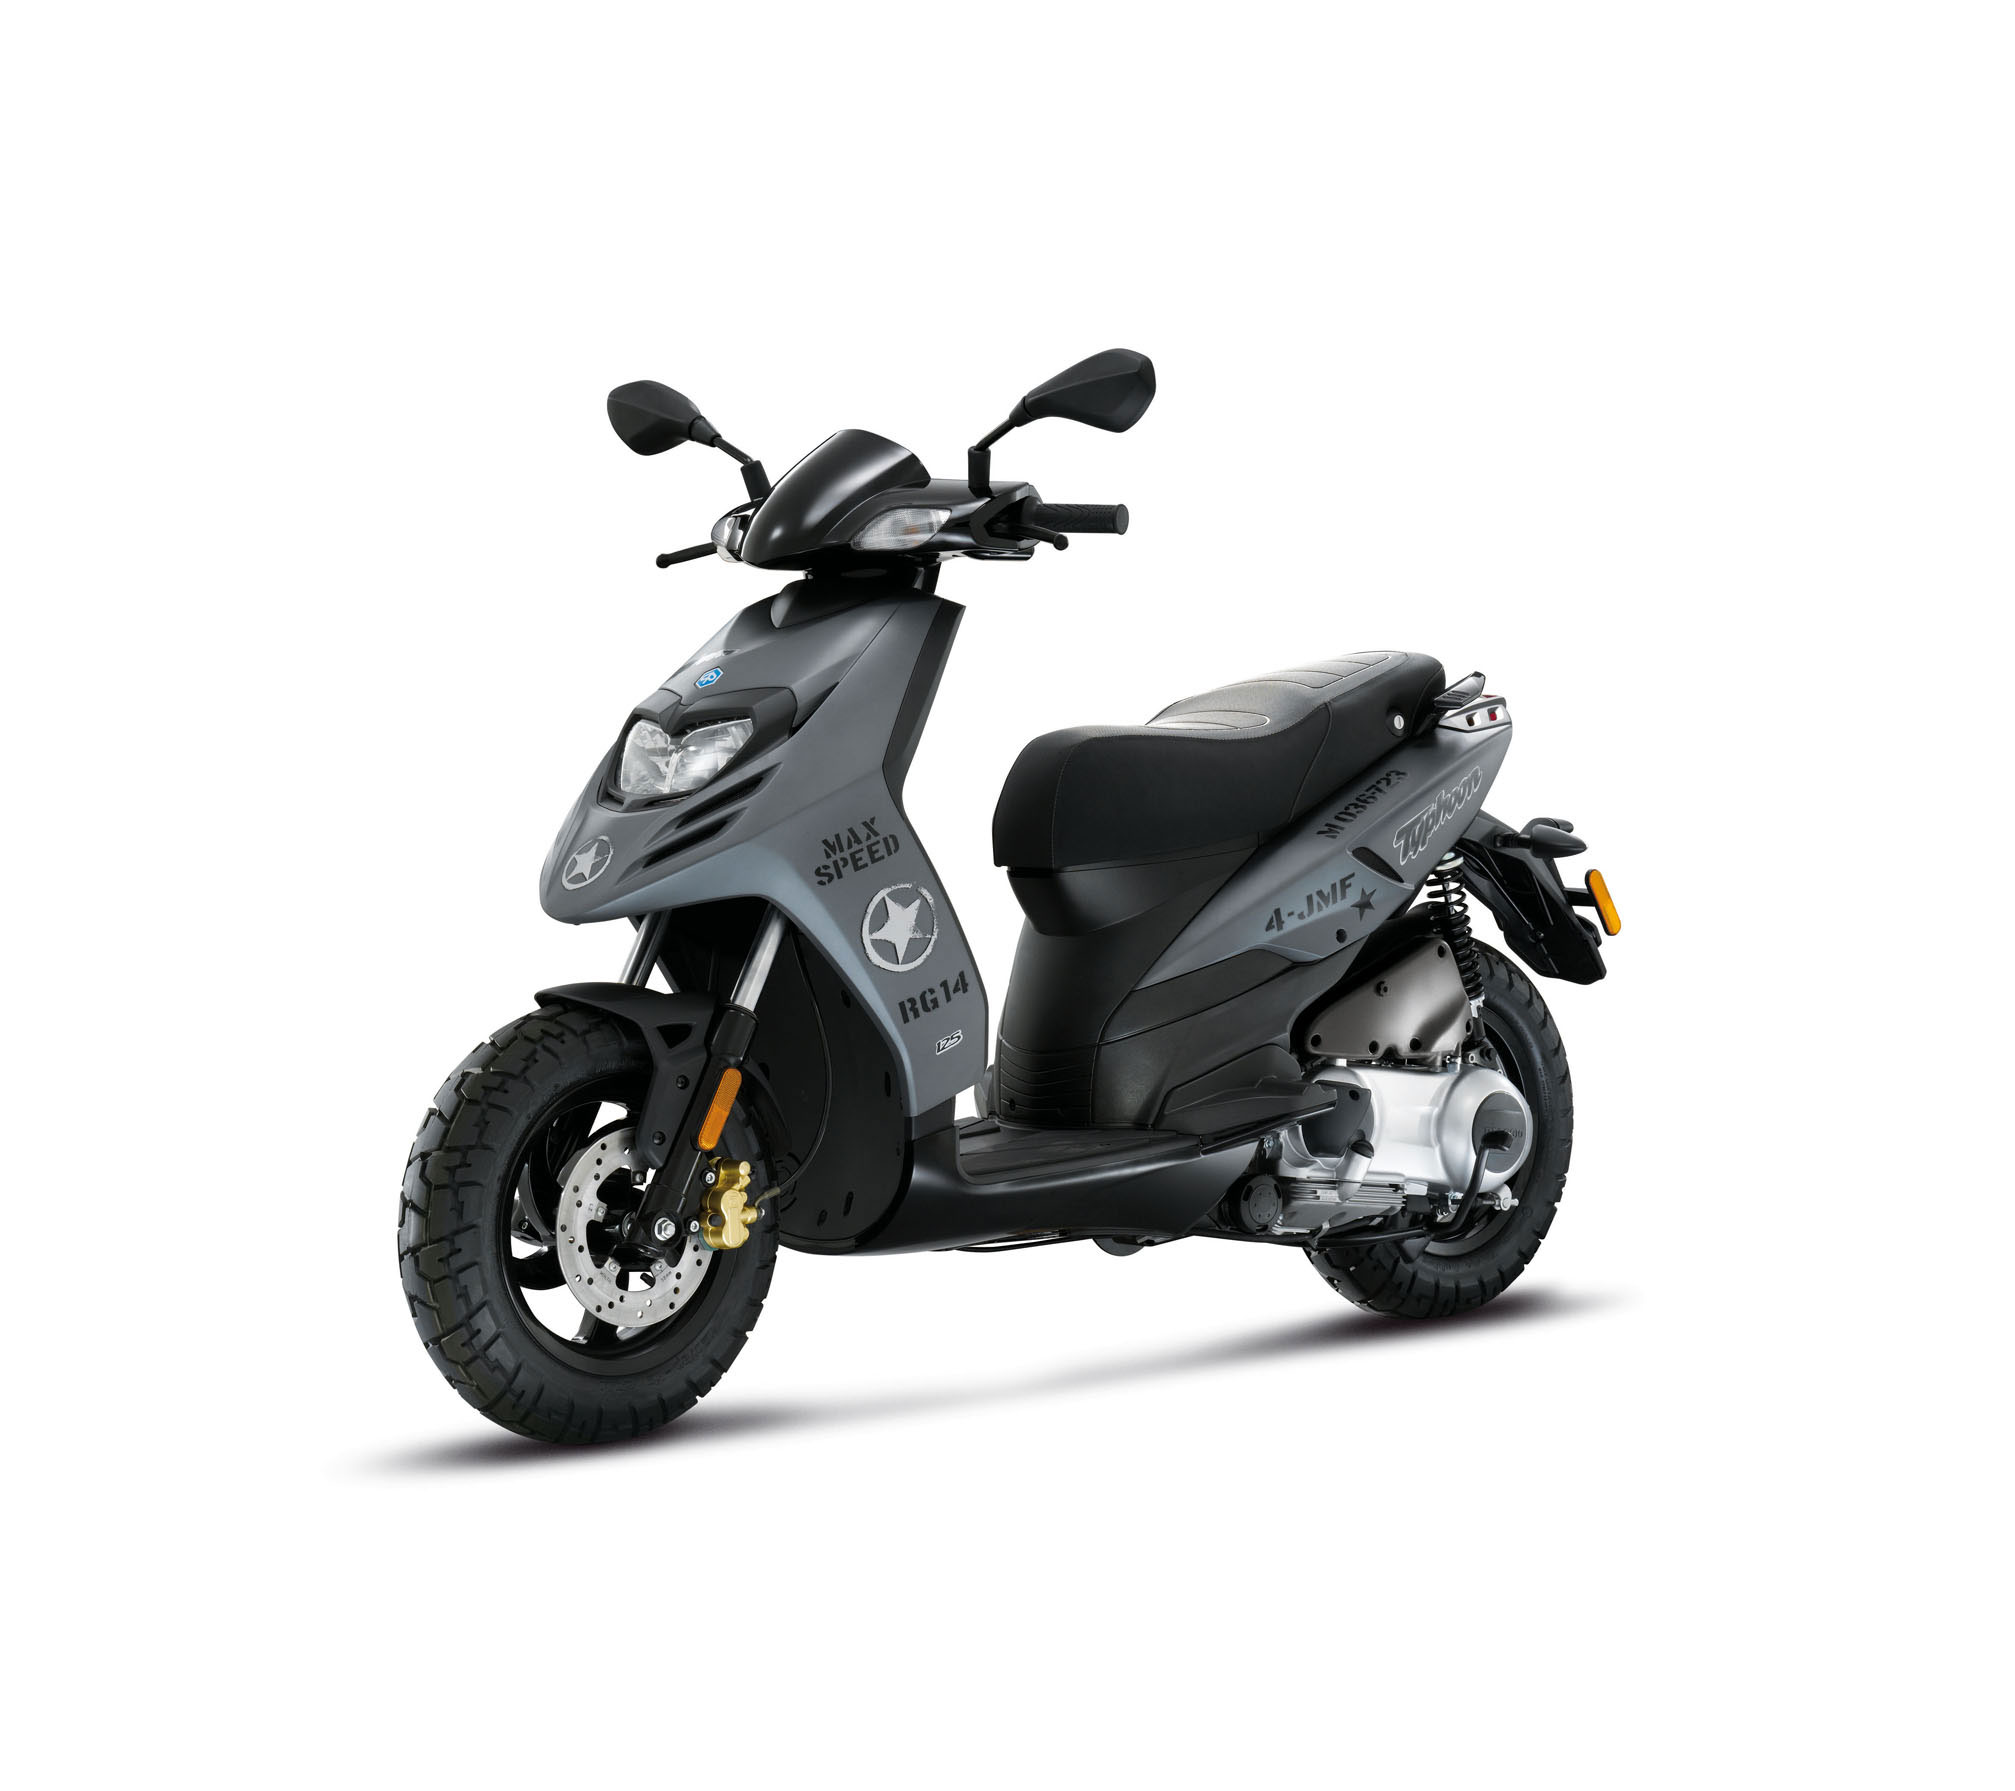 2015 piaggio typhoon 50 review